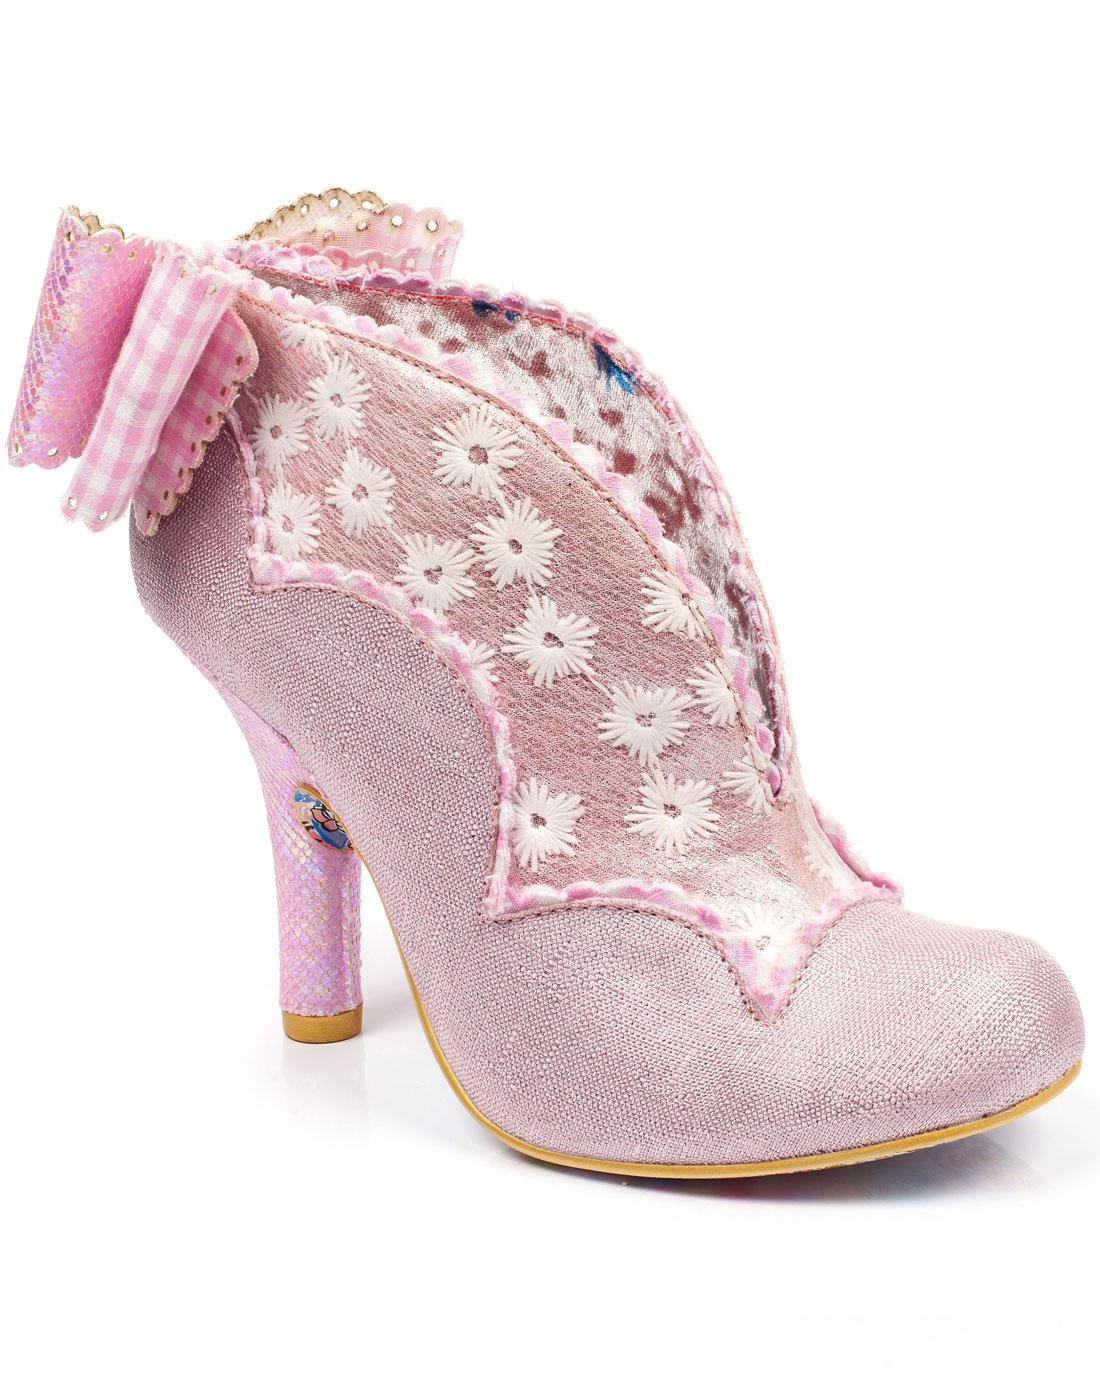 Toasted Teacake IRREGULAR Choice Floral Heels PINK